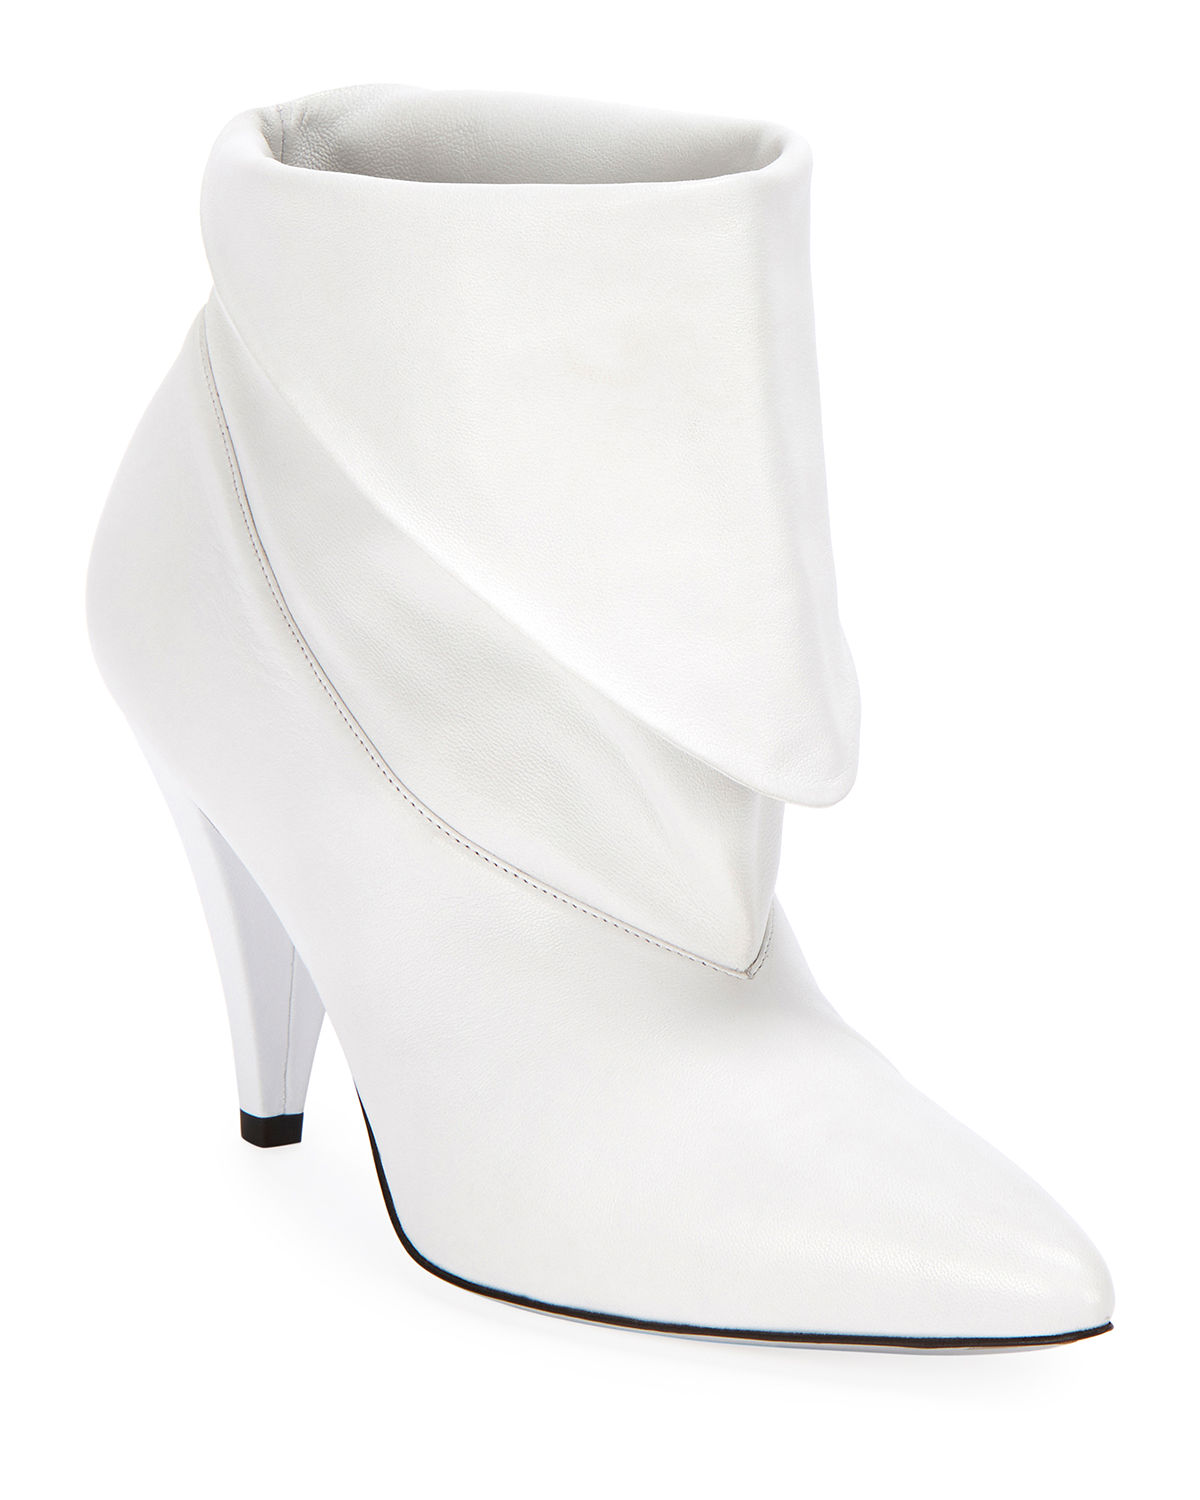 8719898ffb05 Givenchy Show Leather Folded Cone-Heel Ankle Boots